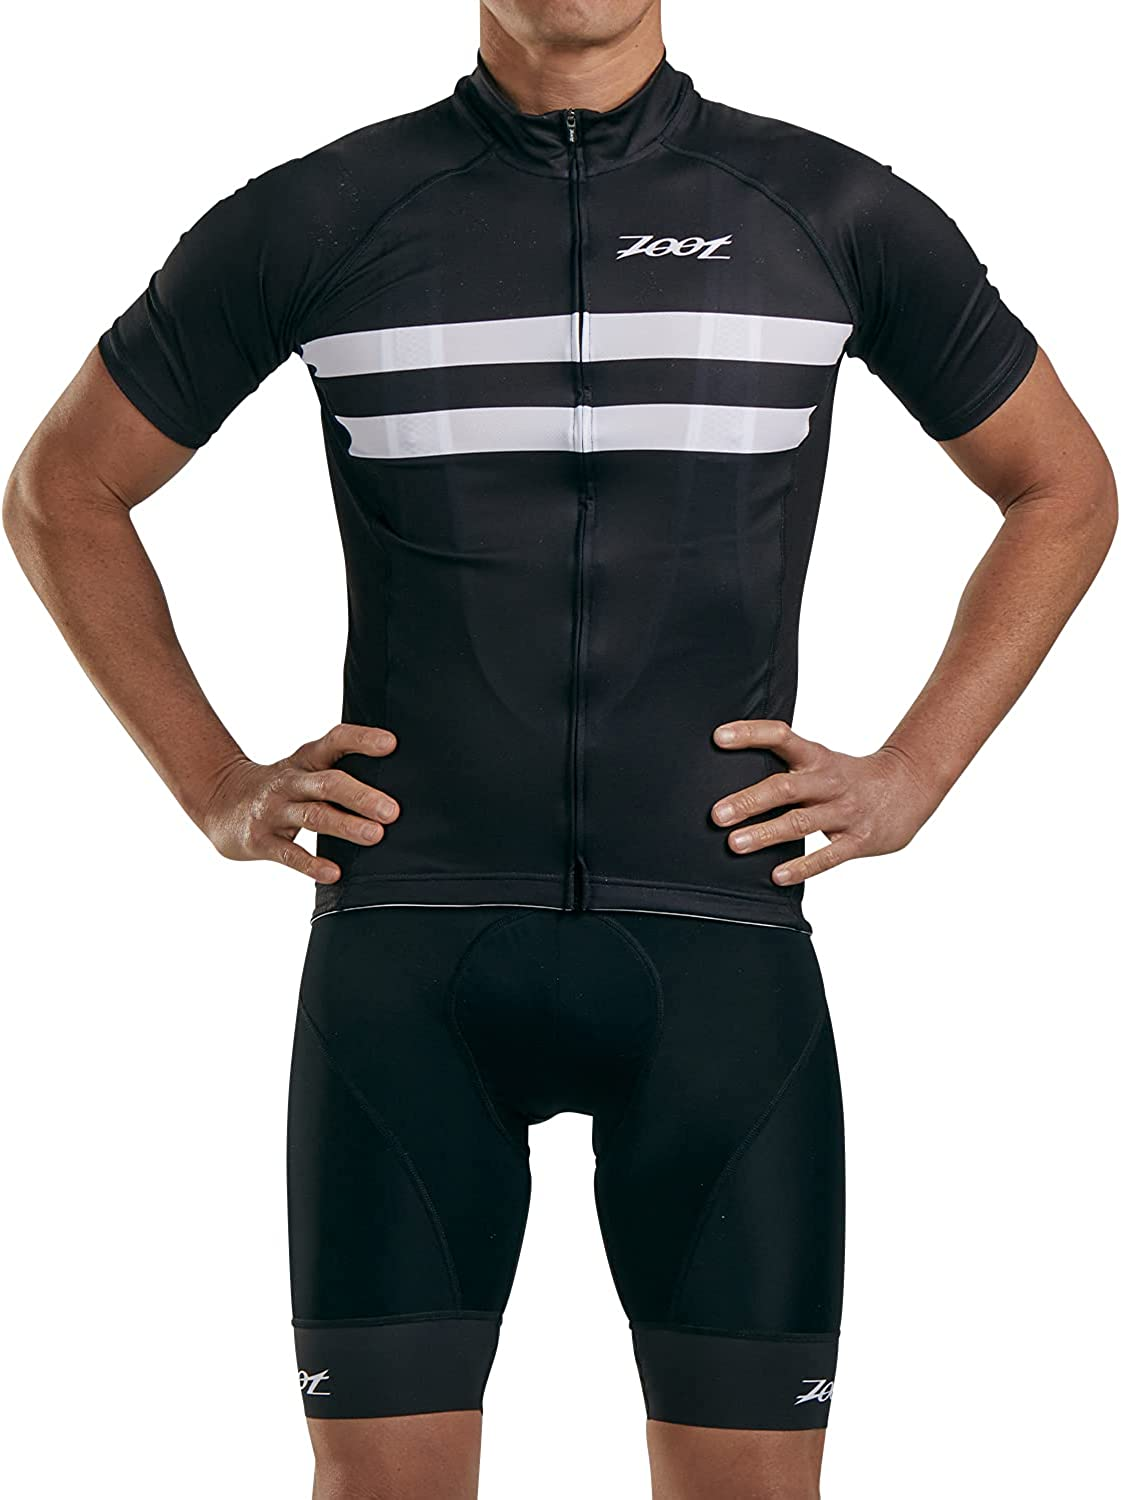 Seasonal Wrap Introduction Zoot Men's Core Cycling Jersey Recommendation